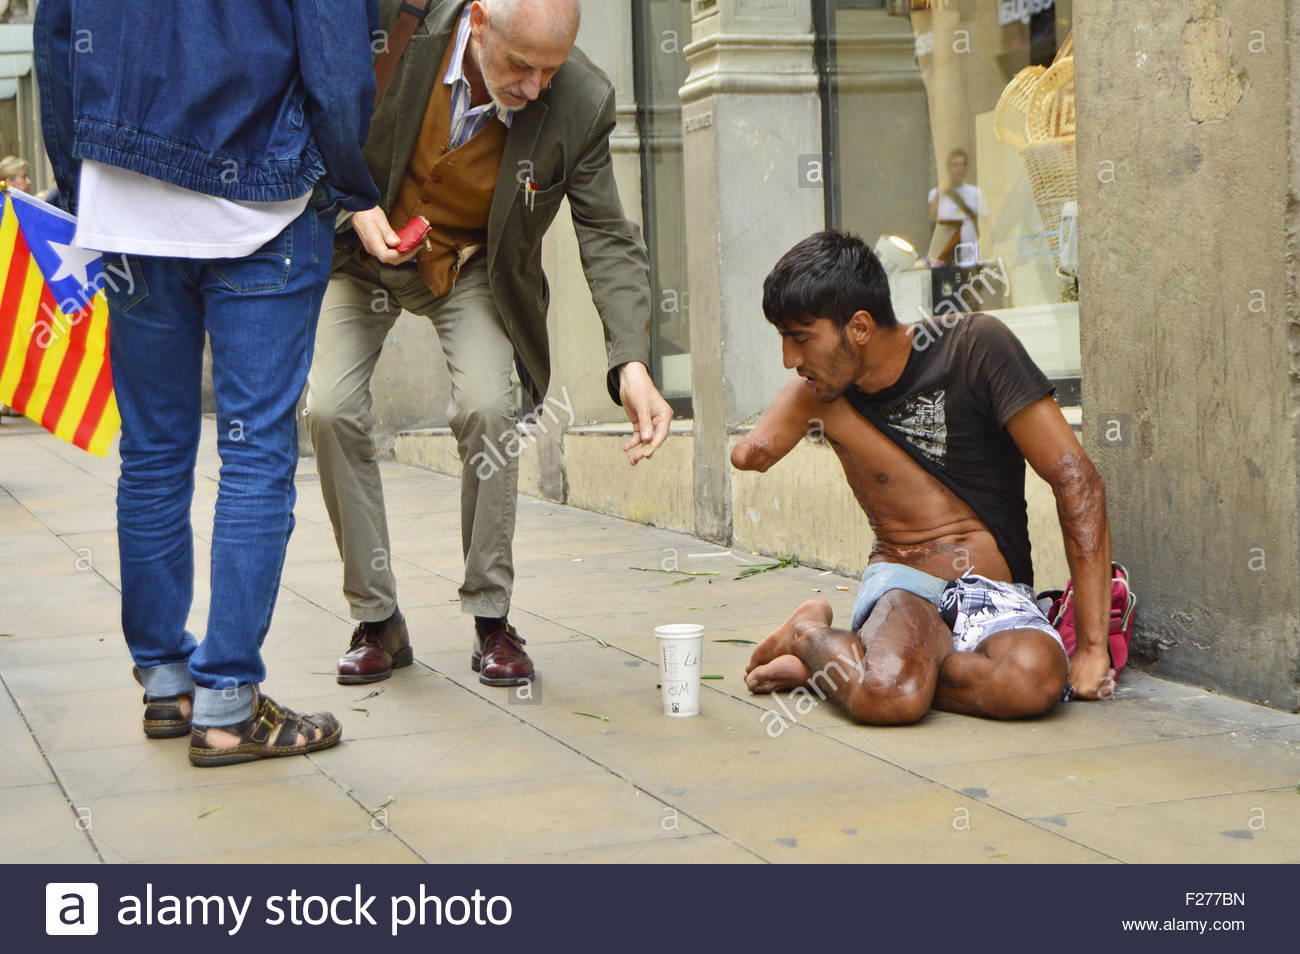 Disabled armless man begging for money in the streets of Barri Gotic (Old Town)  Barcelona Spain Europe. National - Stock Image